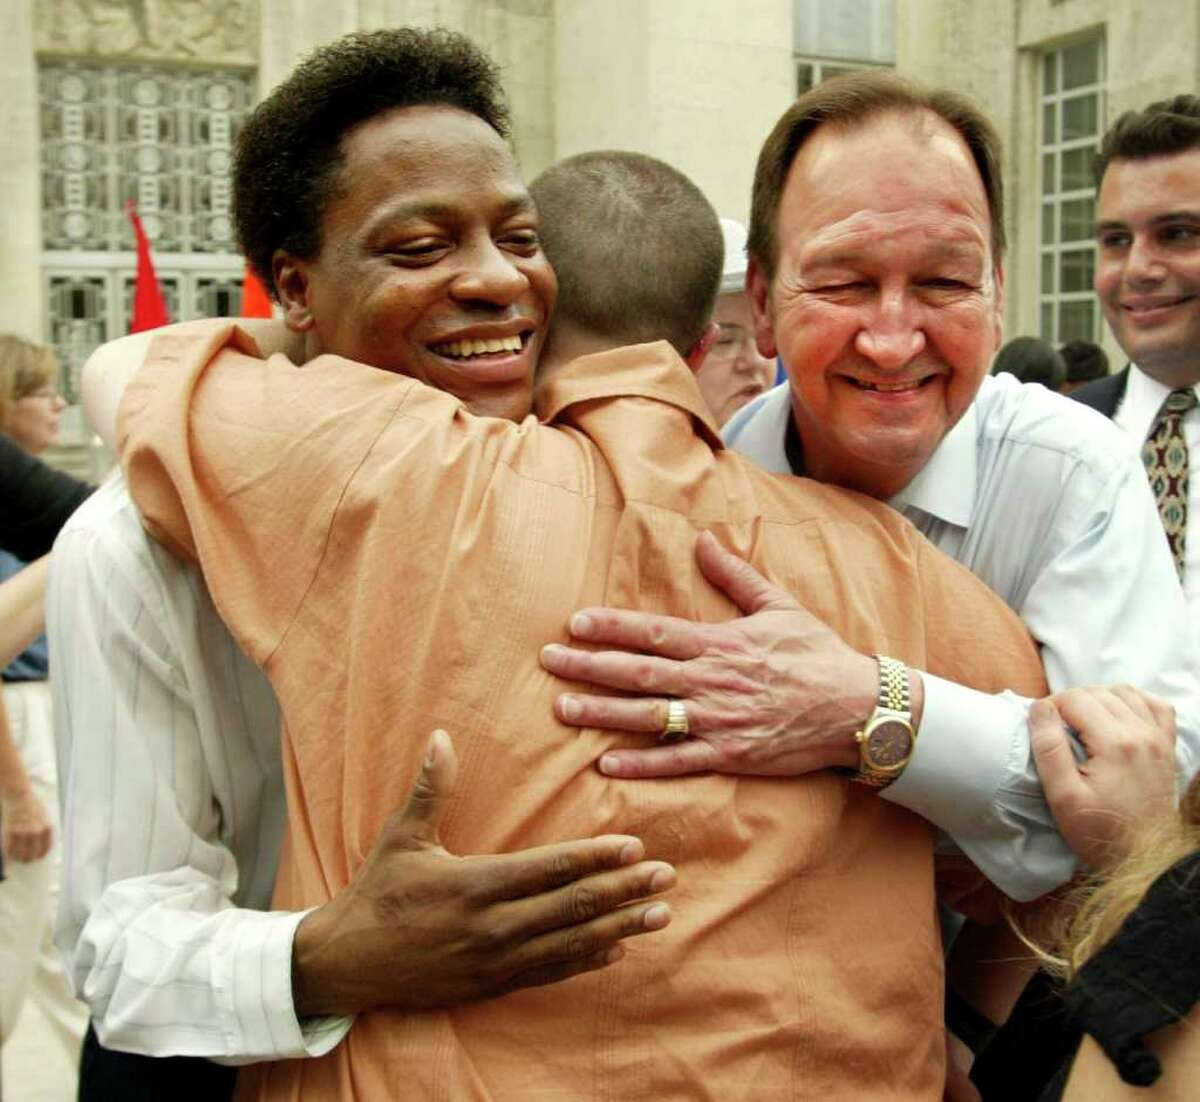 Tyron Garner, left, and John Geddes Lawrence, right, are hugged by a well-wisher after a rally at Houston City Hall in 2003 held to celebrate the Supreme Court ruling striking down a Texas law that bans gay sex acts. Lawrence and Garner were prosected in Houston under Texas' sodomy law in 1998 and the case became the test case. But the law itself remains on the books.